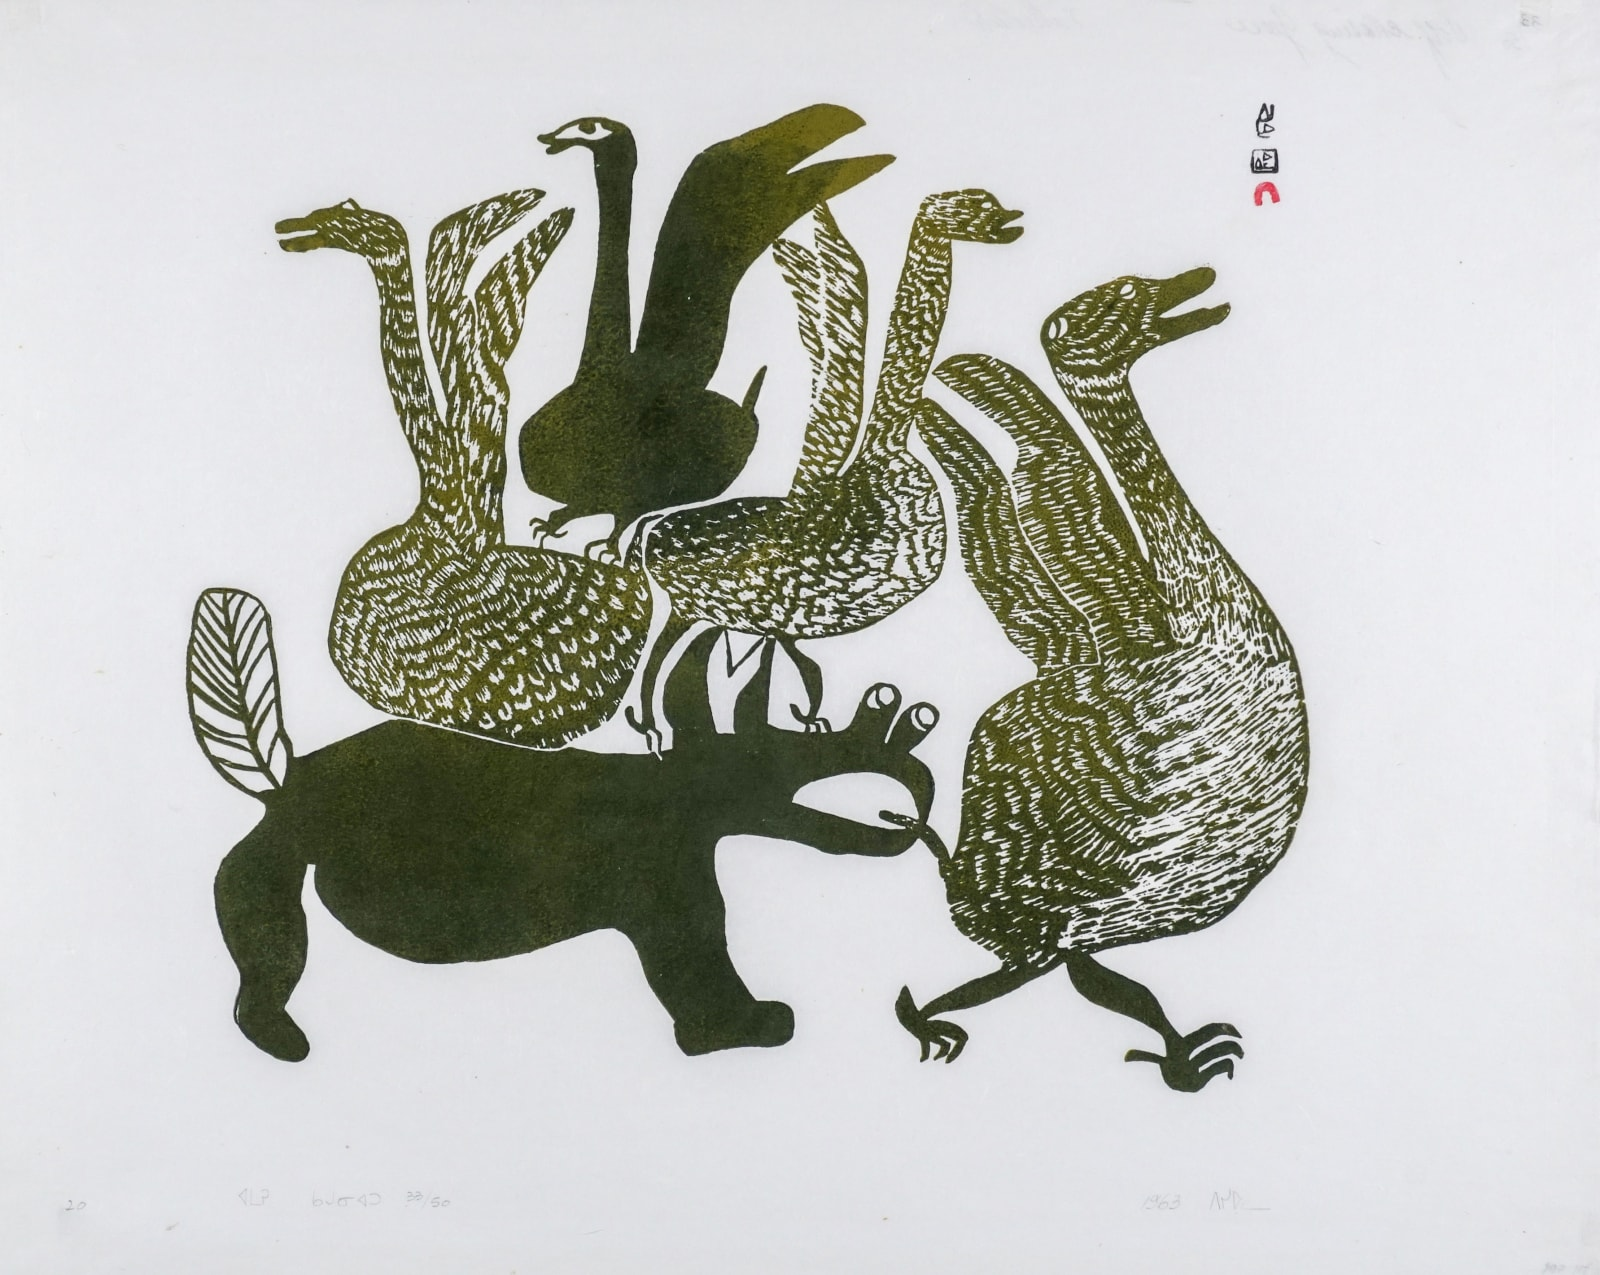 LOT 40 PITSEOLAK ASHOONA, R.C.A., O.C., (1904-1983) KINNGAIT (CAPE DORSET) Wolf Chasing Geese, 1963 stonecut, 20 x 24 in (50.8 x 61 cm) ESTIMATE: $1,200 — $1,800